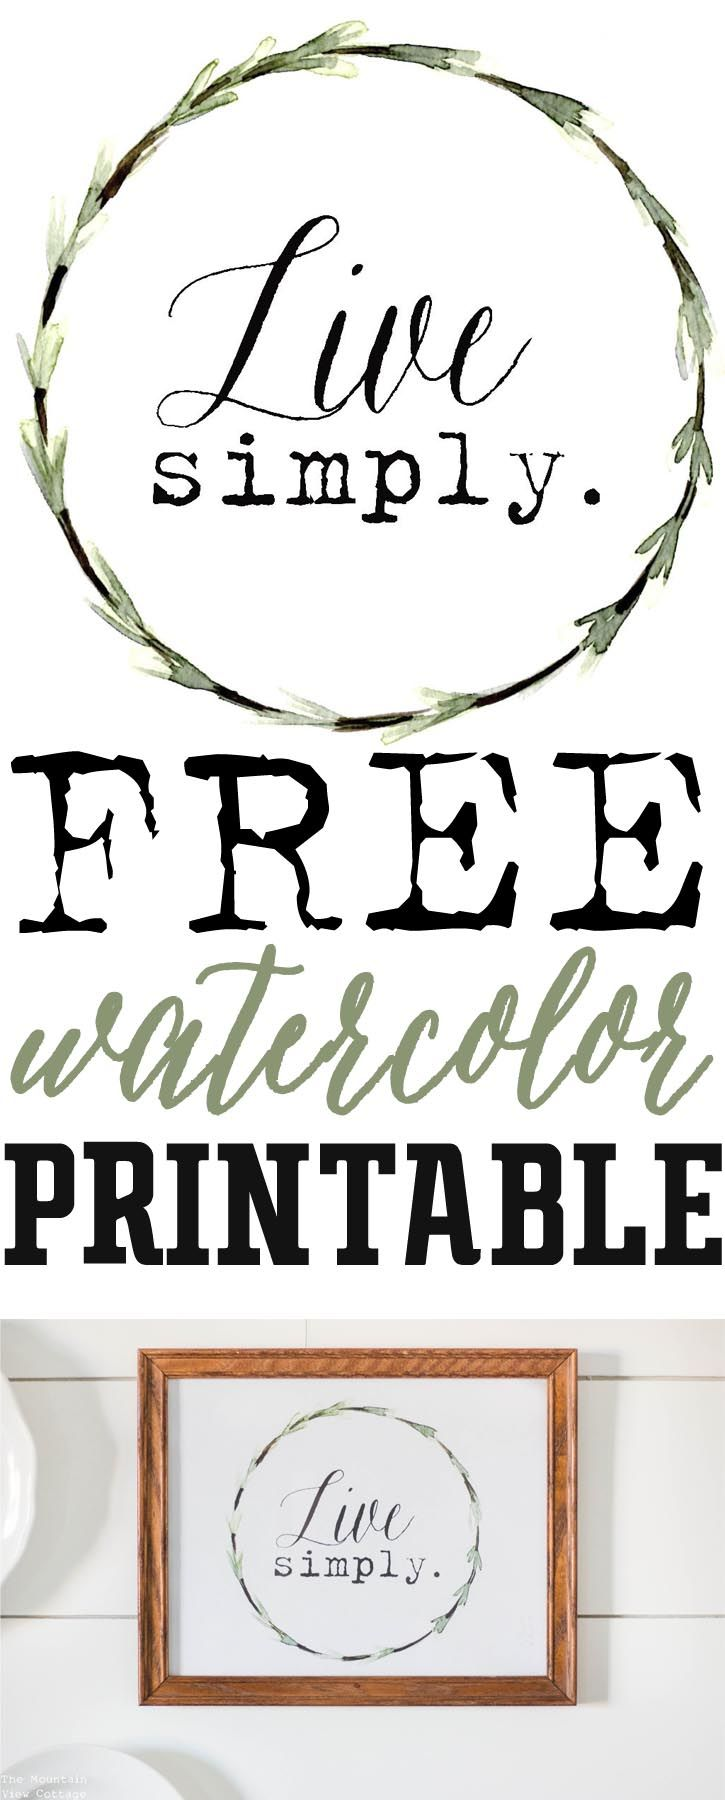 Free Printable Saturday-Live Simply Watercolor Wreath — The Mountain View Cottage